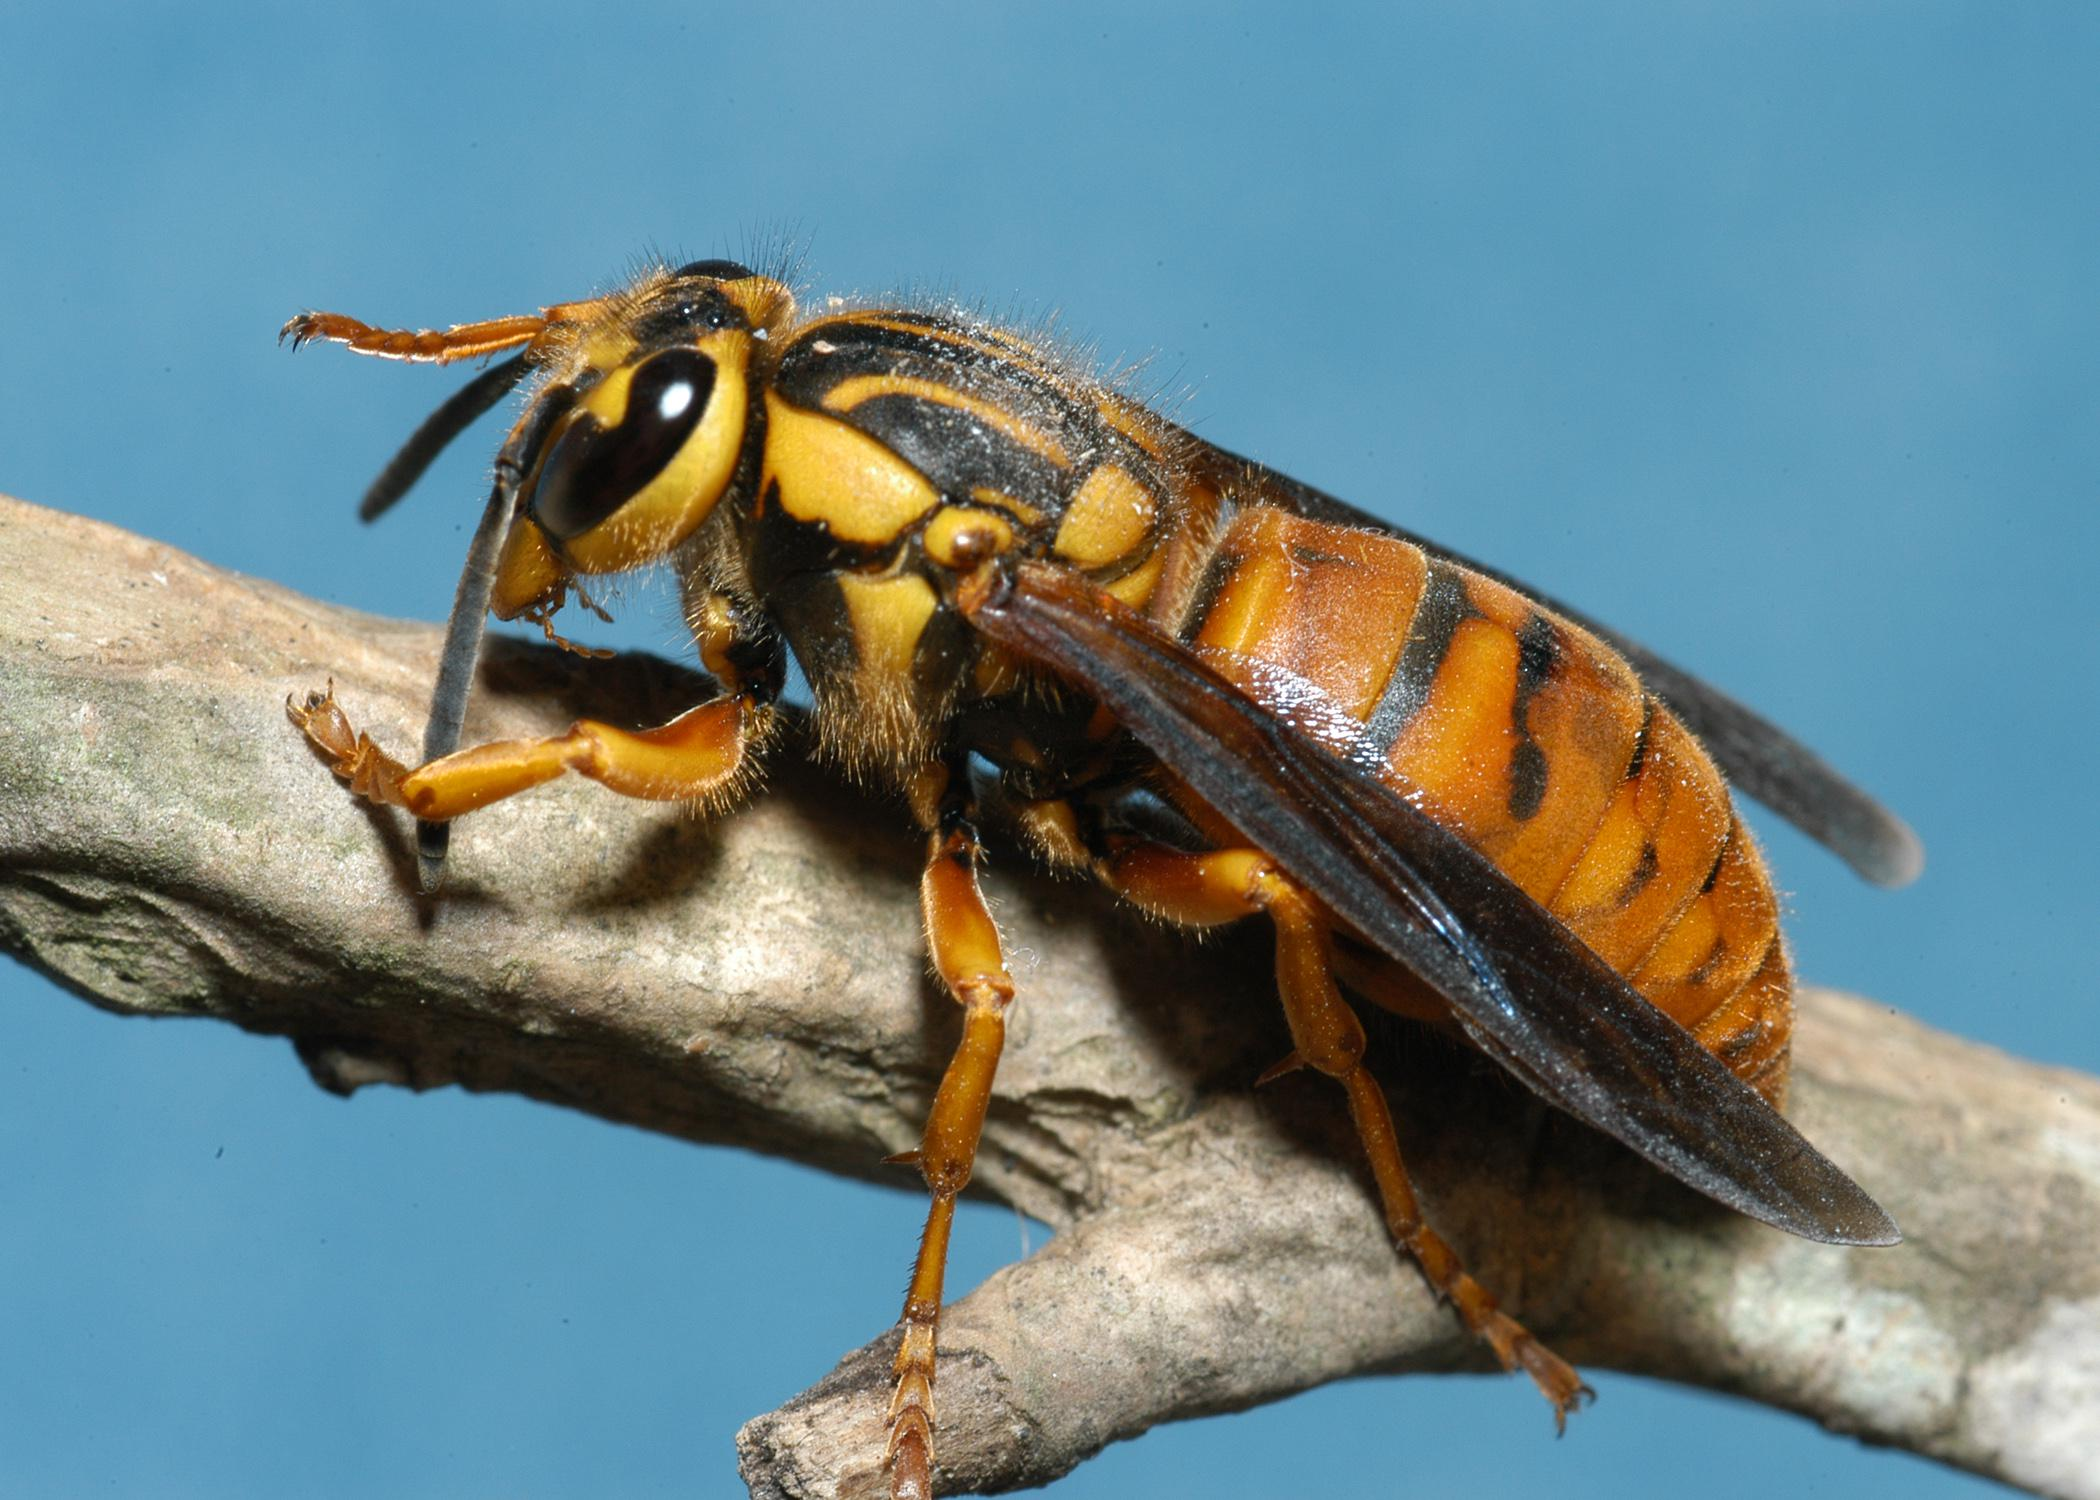 A closeup of a Southern yellowjacket queen.